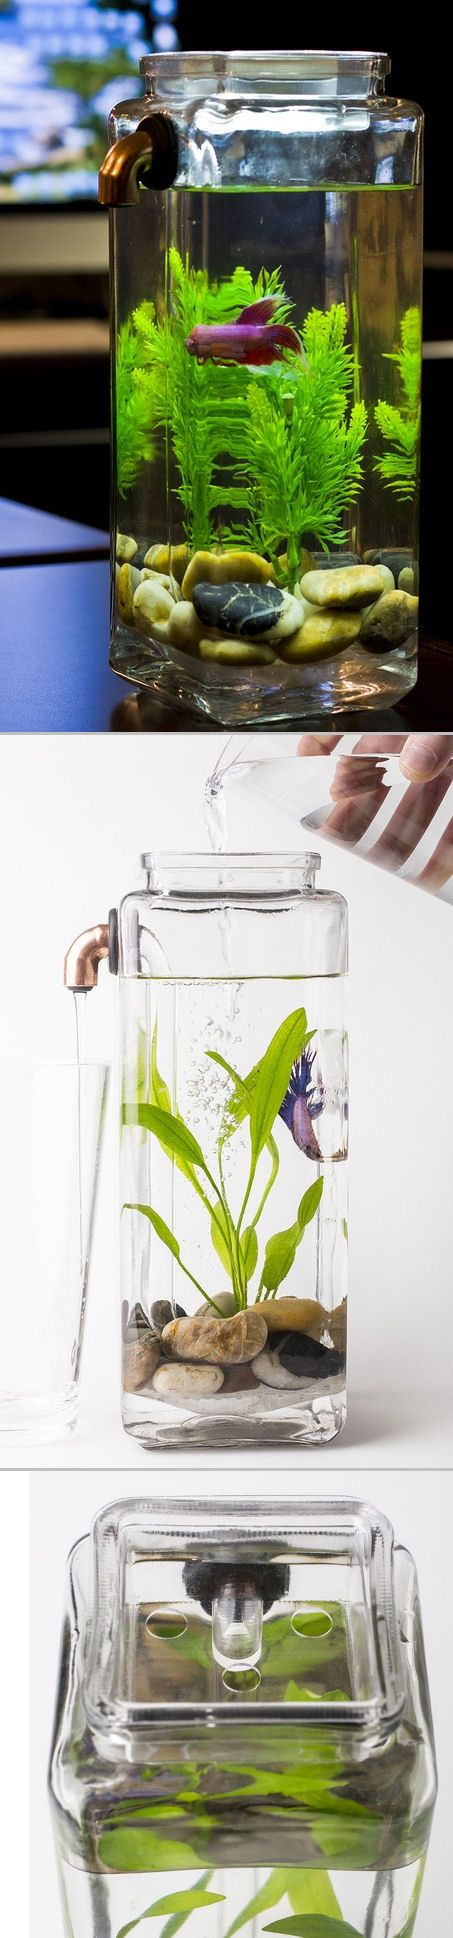 193 best images about good ideas on pinterest recover for Travel fish tank